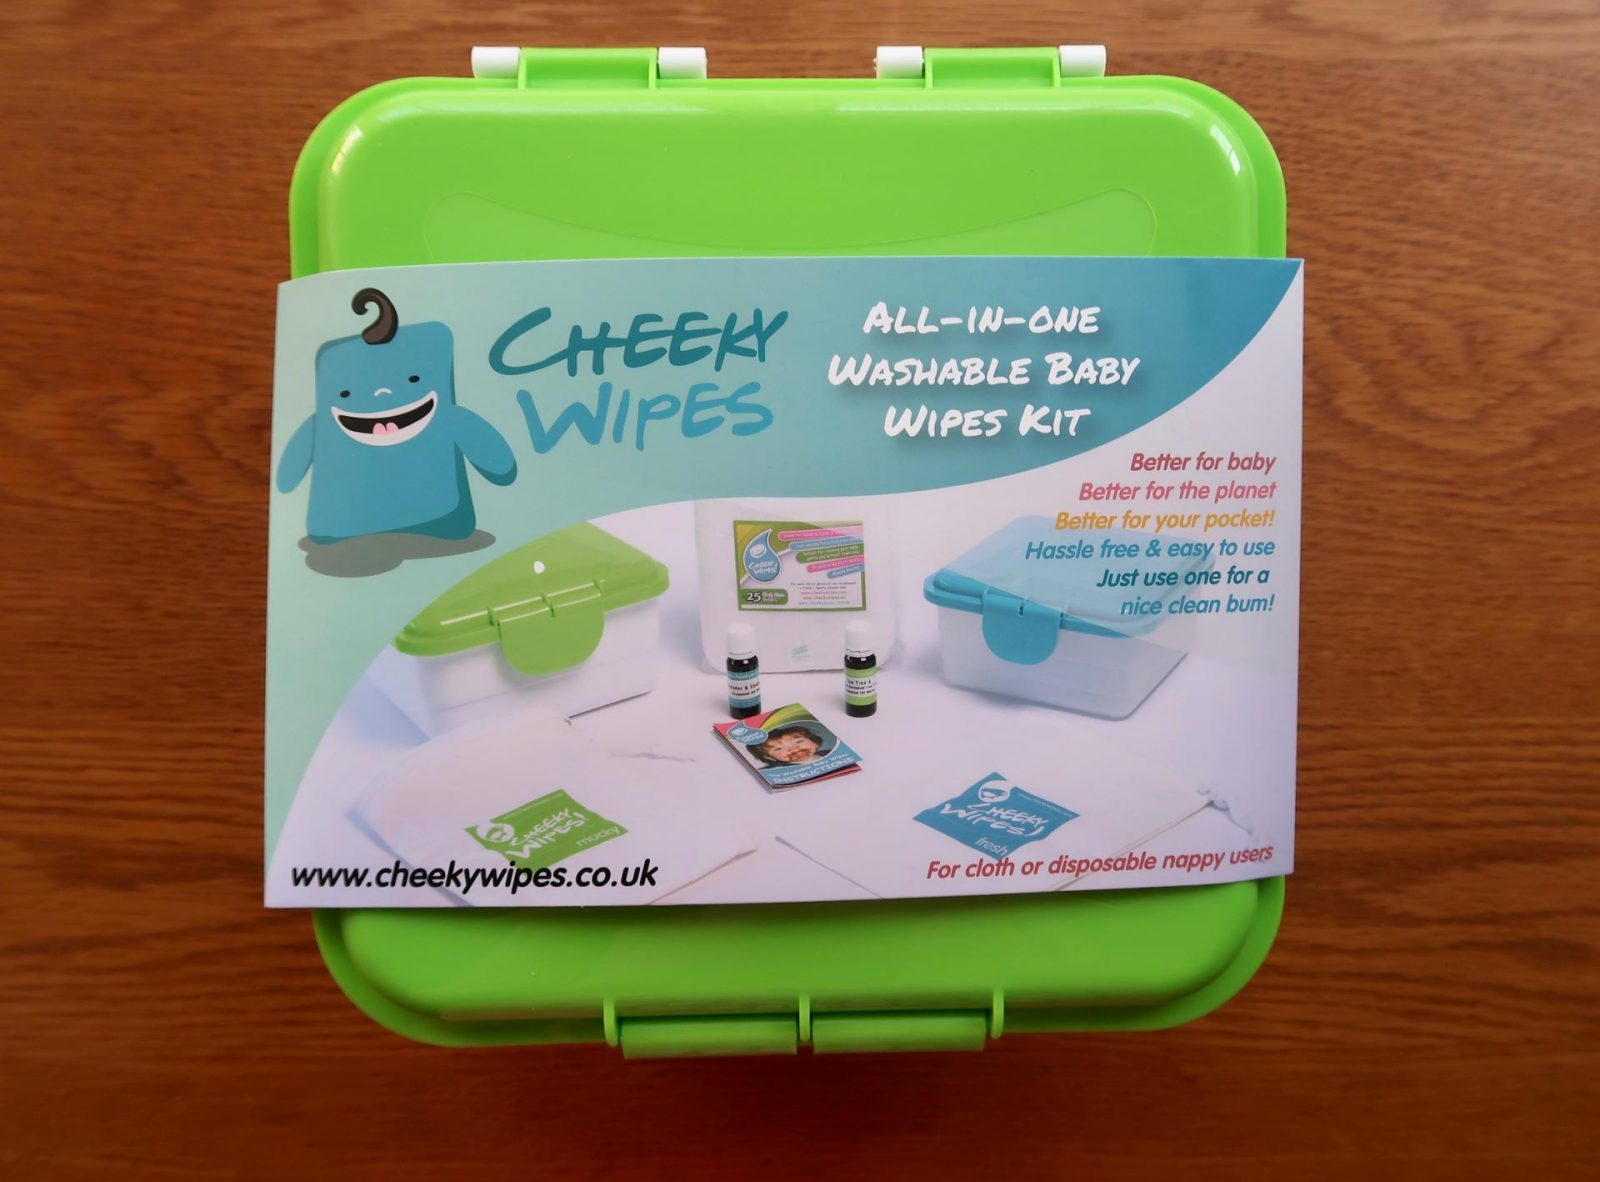 cheeky wipes all in one reusable baby wipes kit